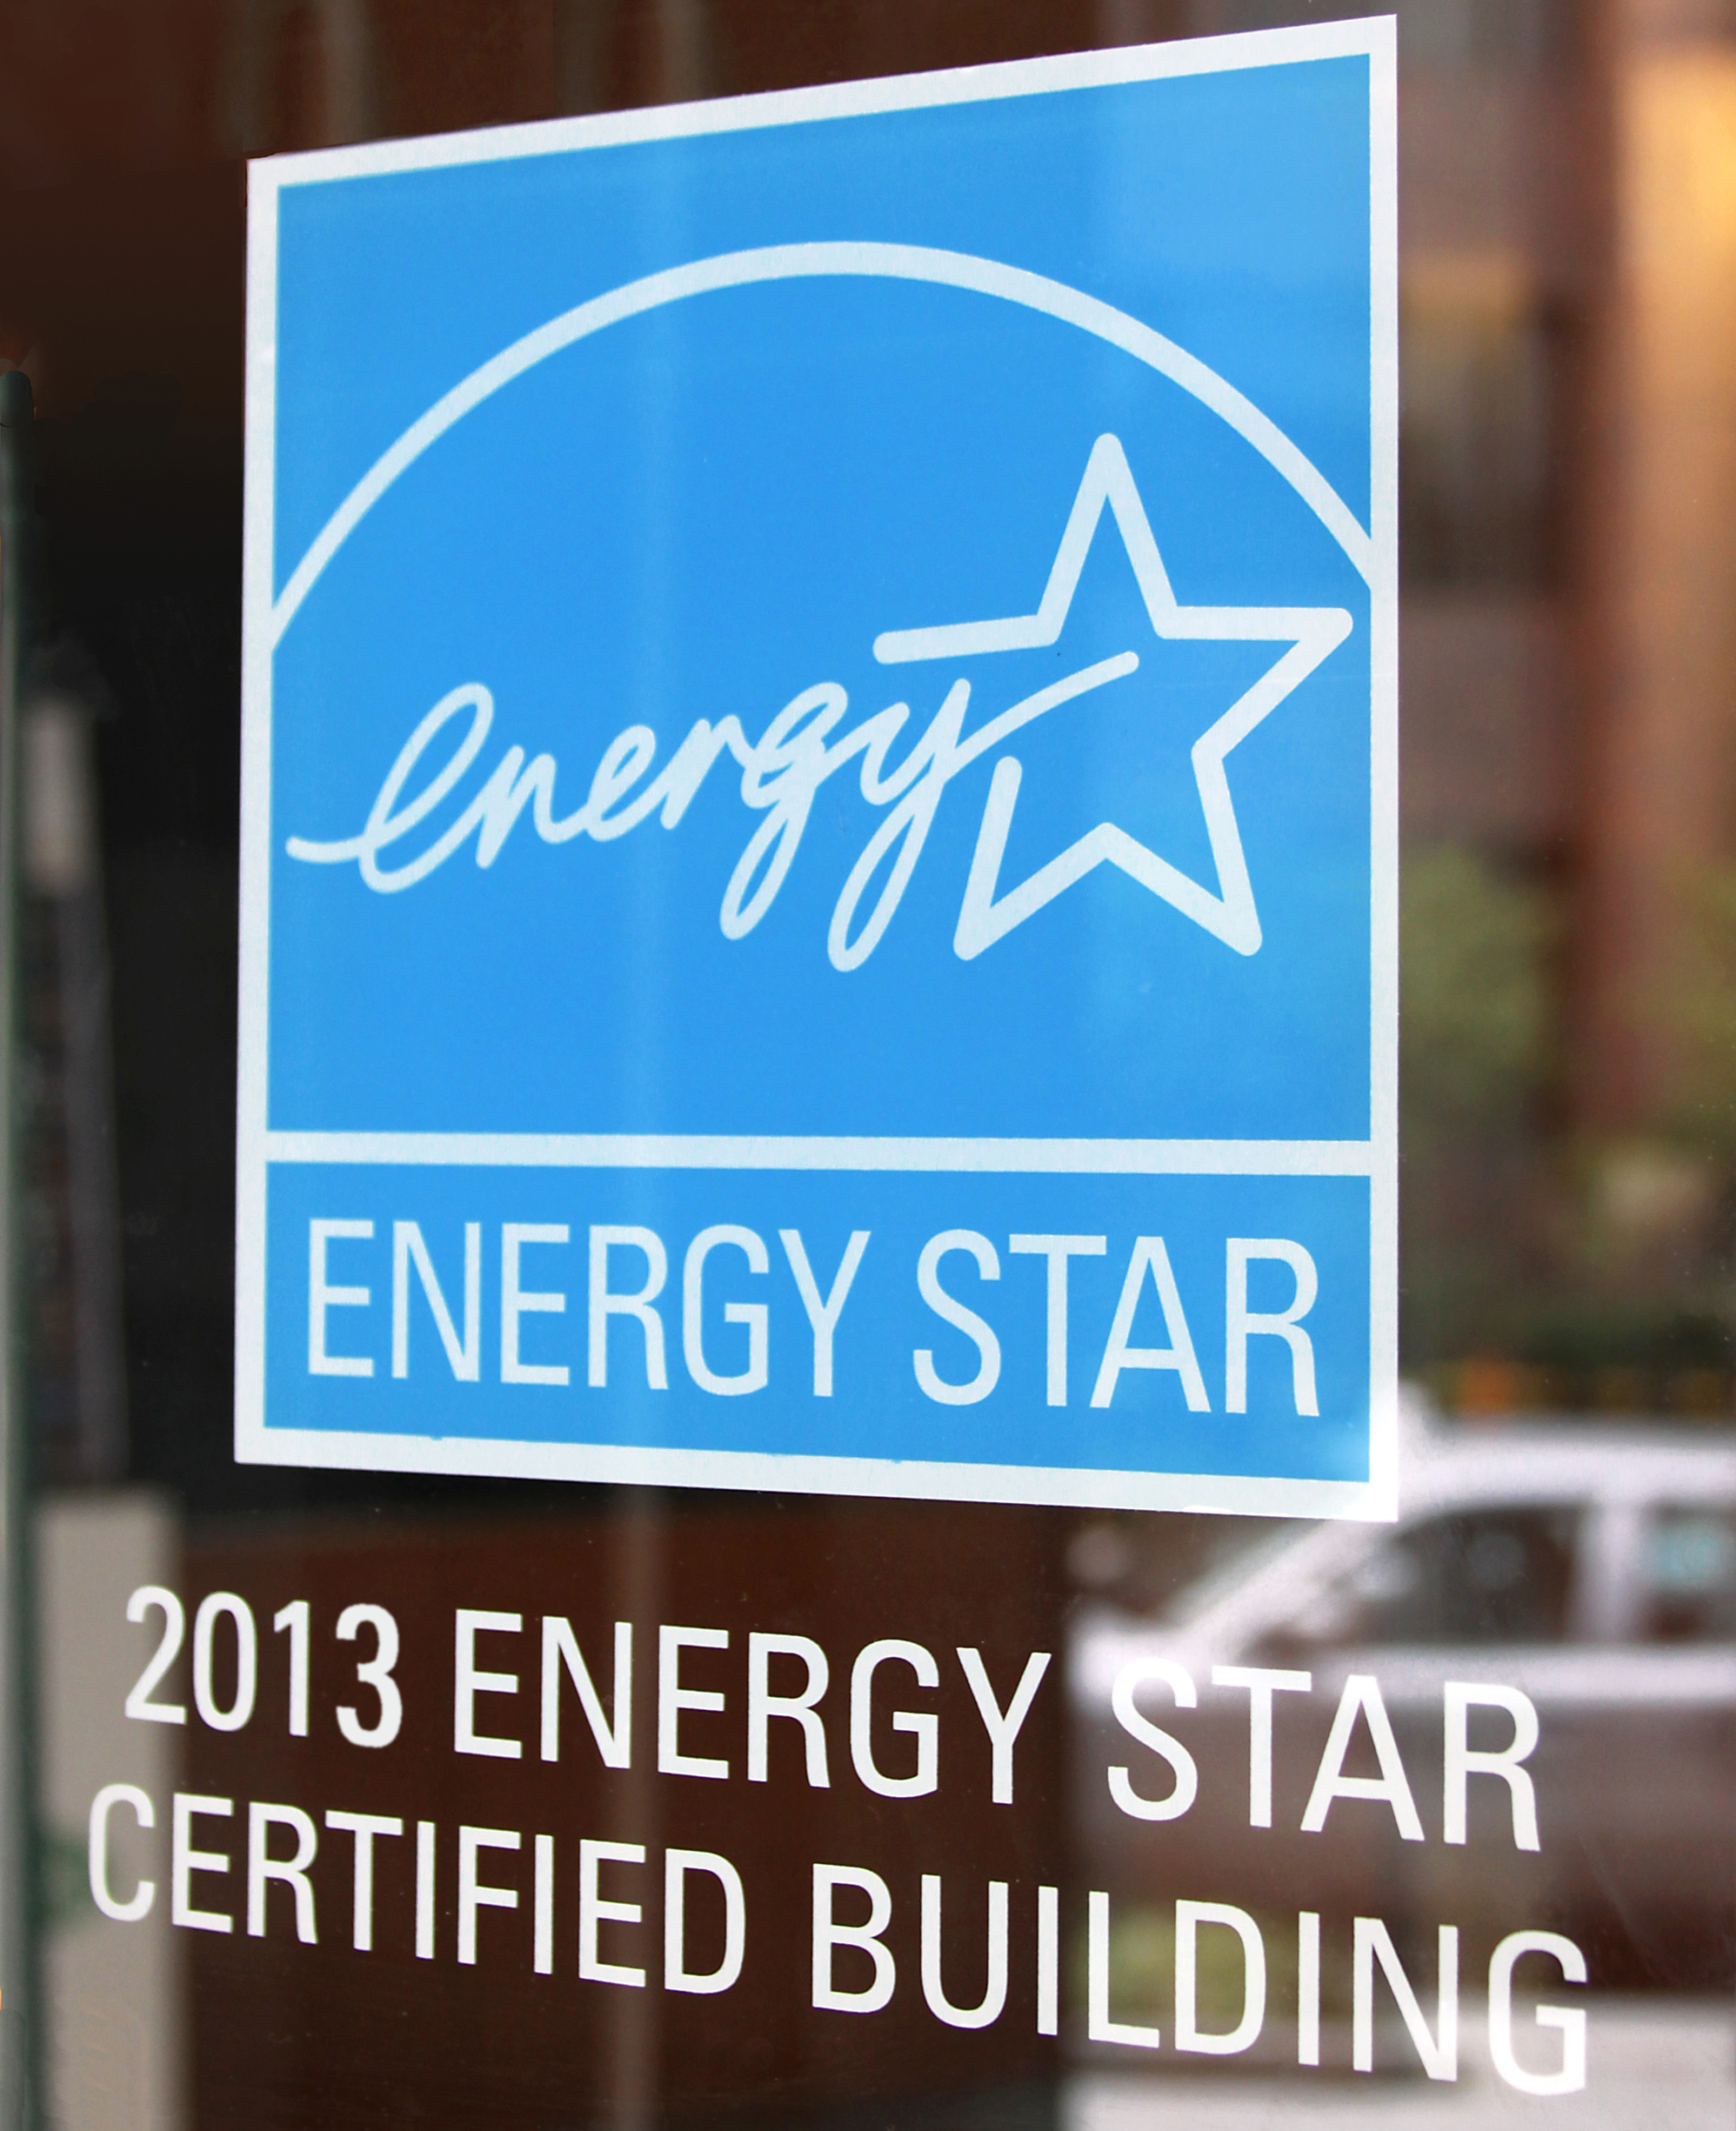 High resolution thumbnail image of ENERGY STAR certified building photo - blue colored.